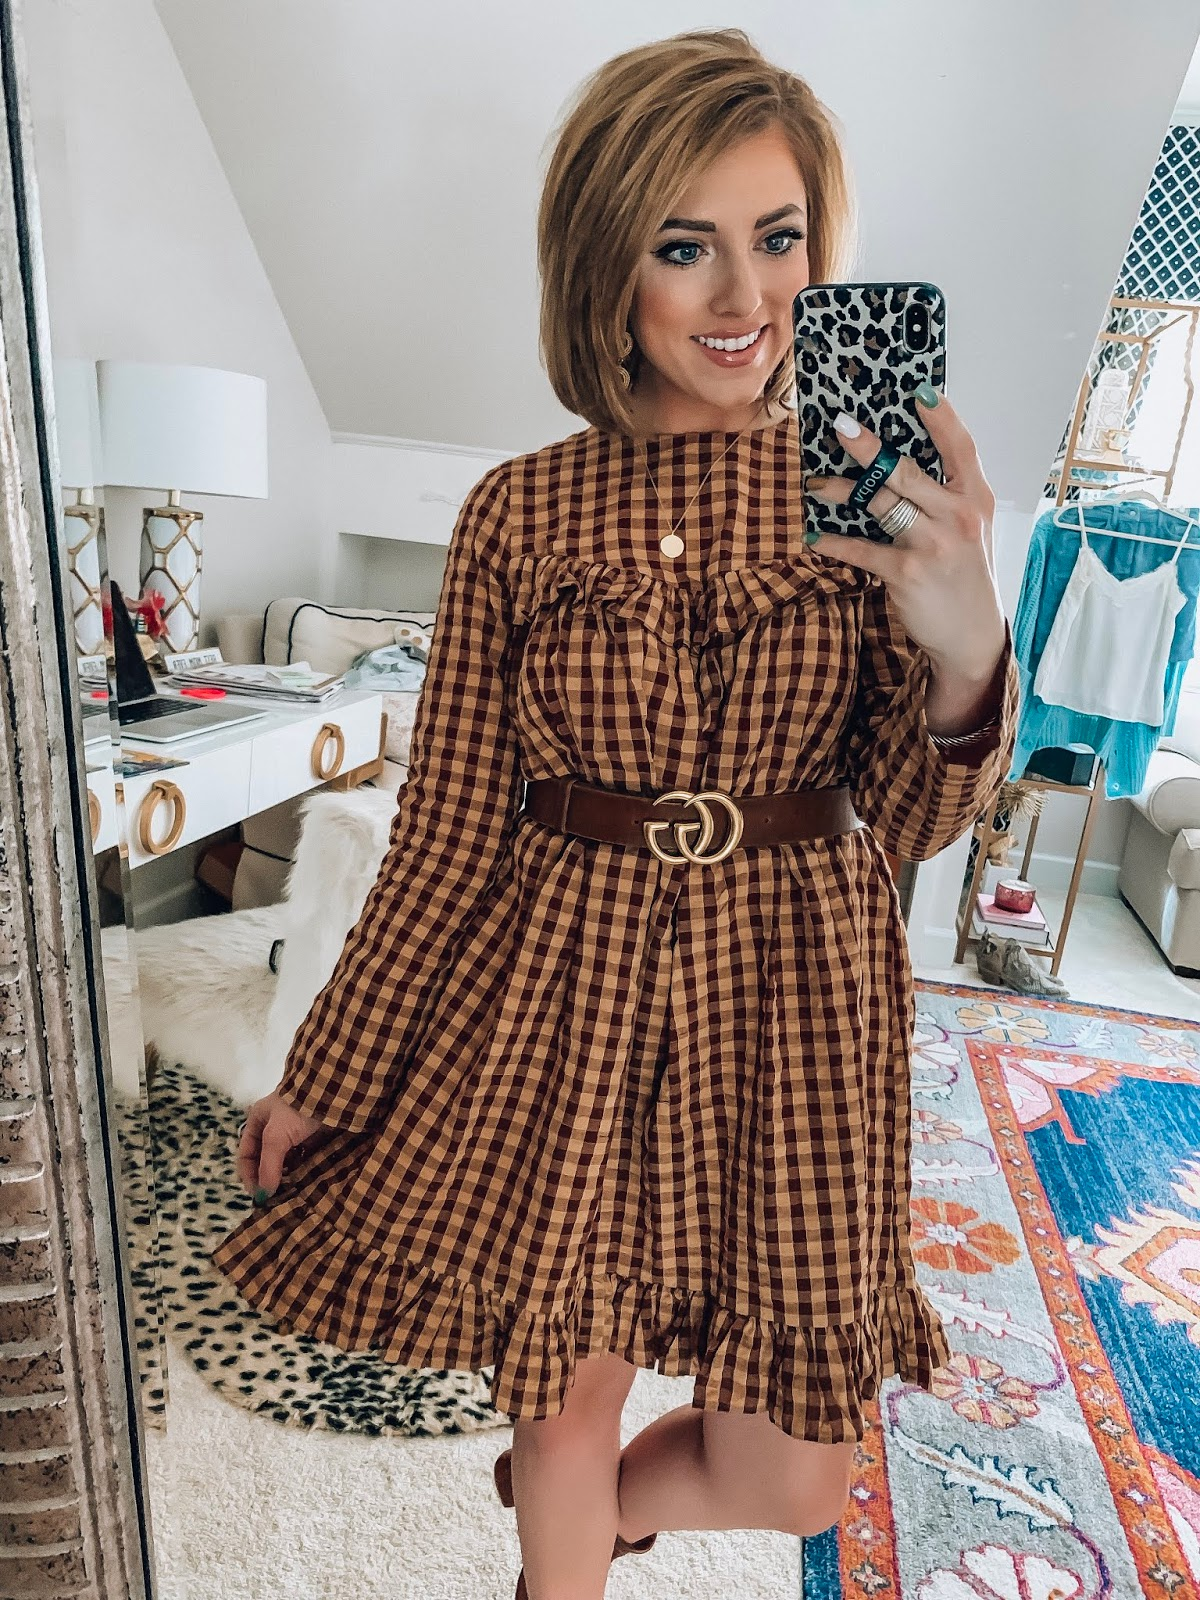 ASOS New Fall Arrivals - $45 Ruffle Gingham Dress for Fall - Something Delightful Blog #fallstyle #affordablefashion